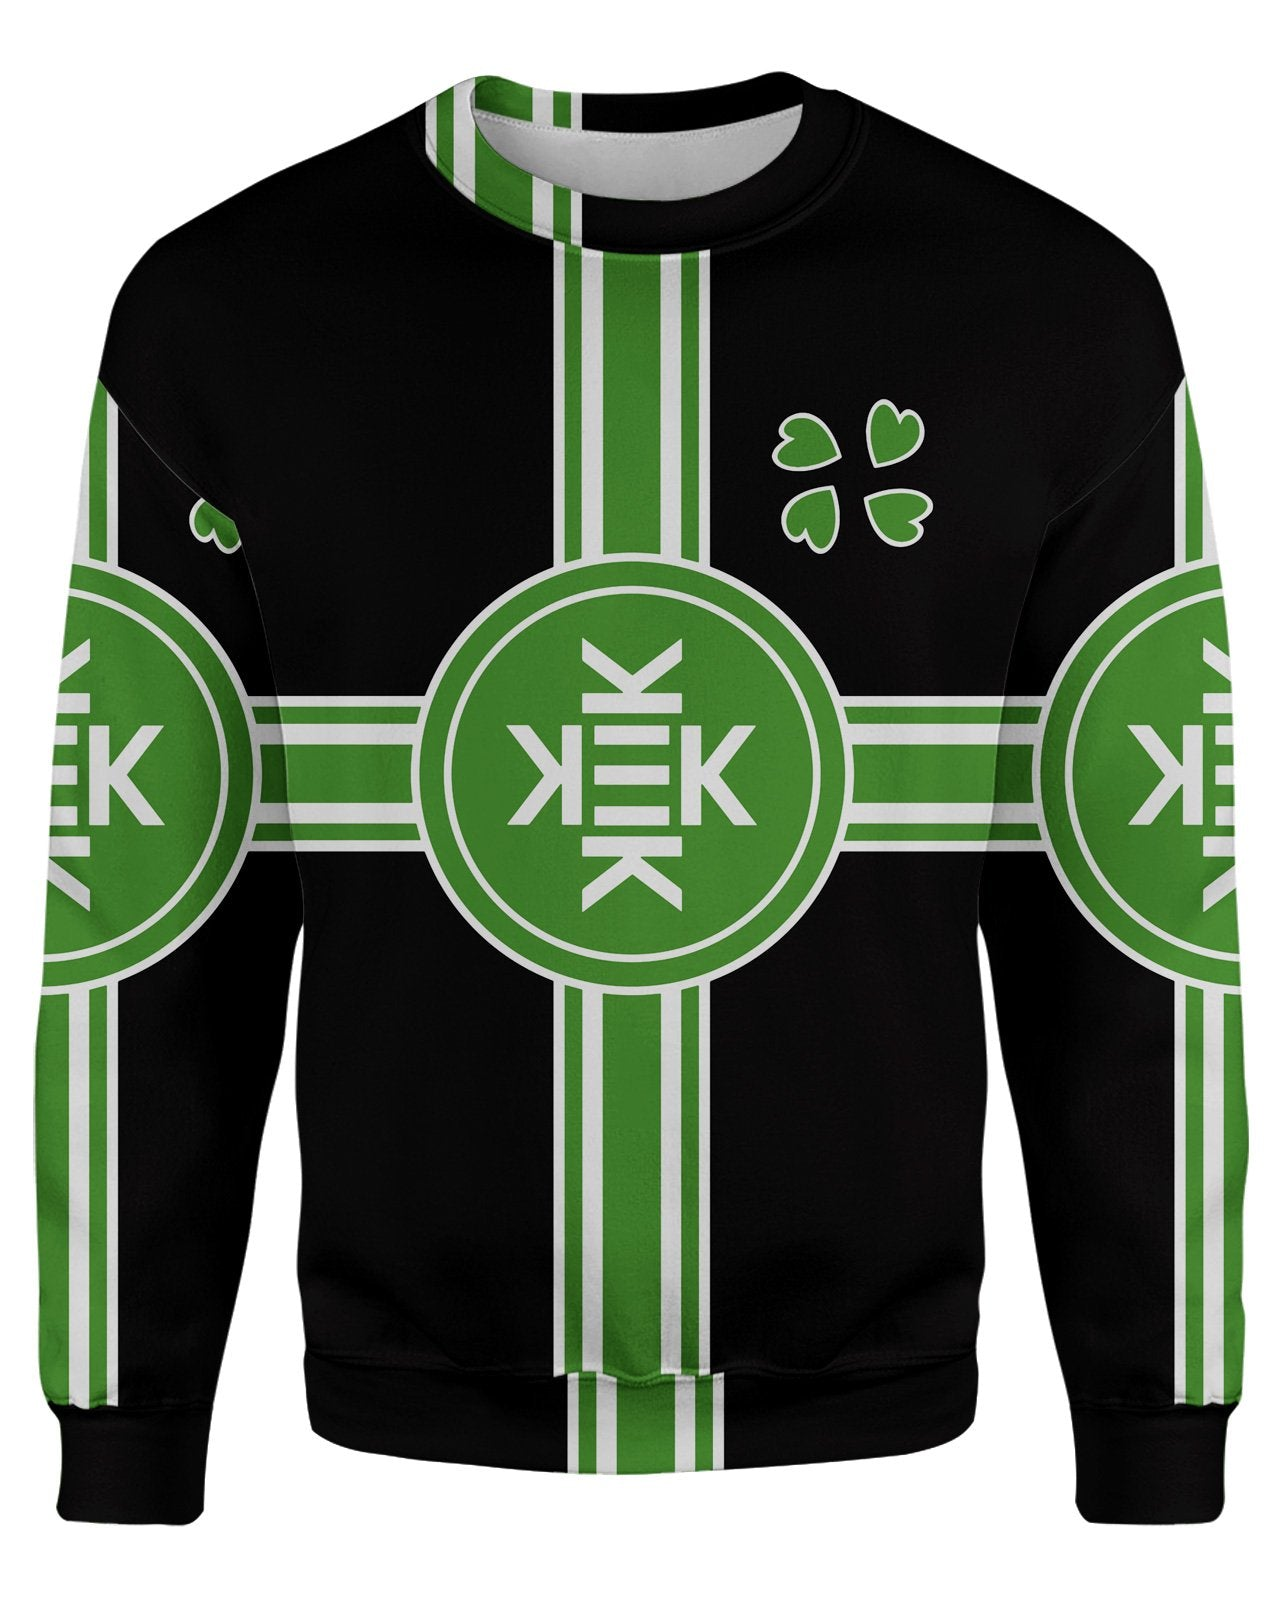 Republic of Kekistan Black Sweatshirt